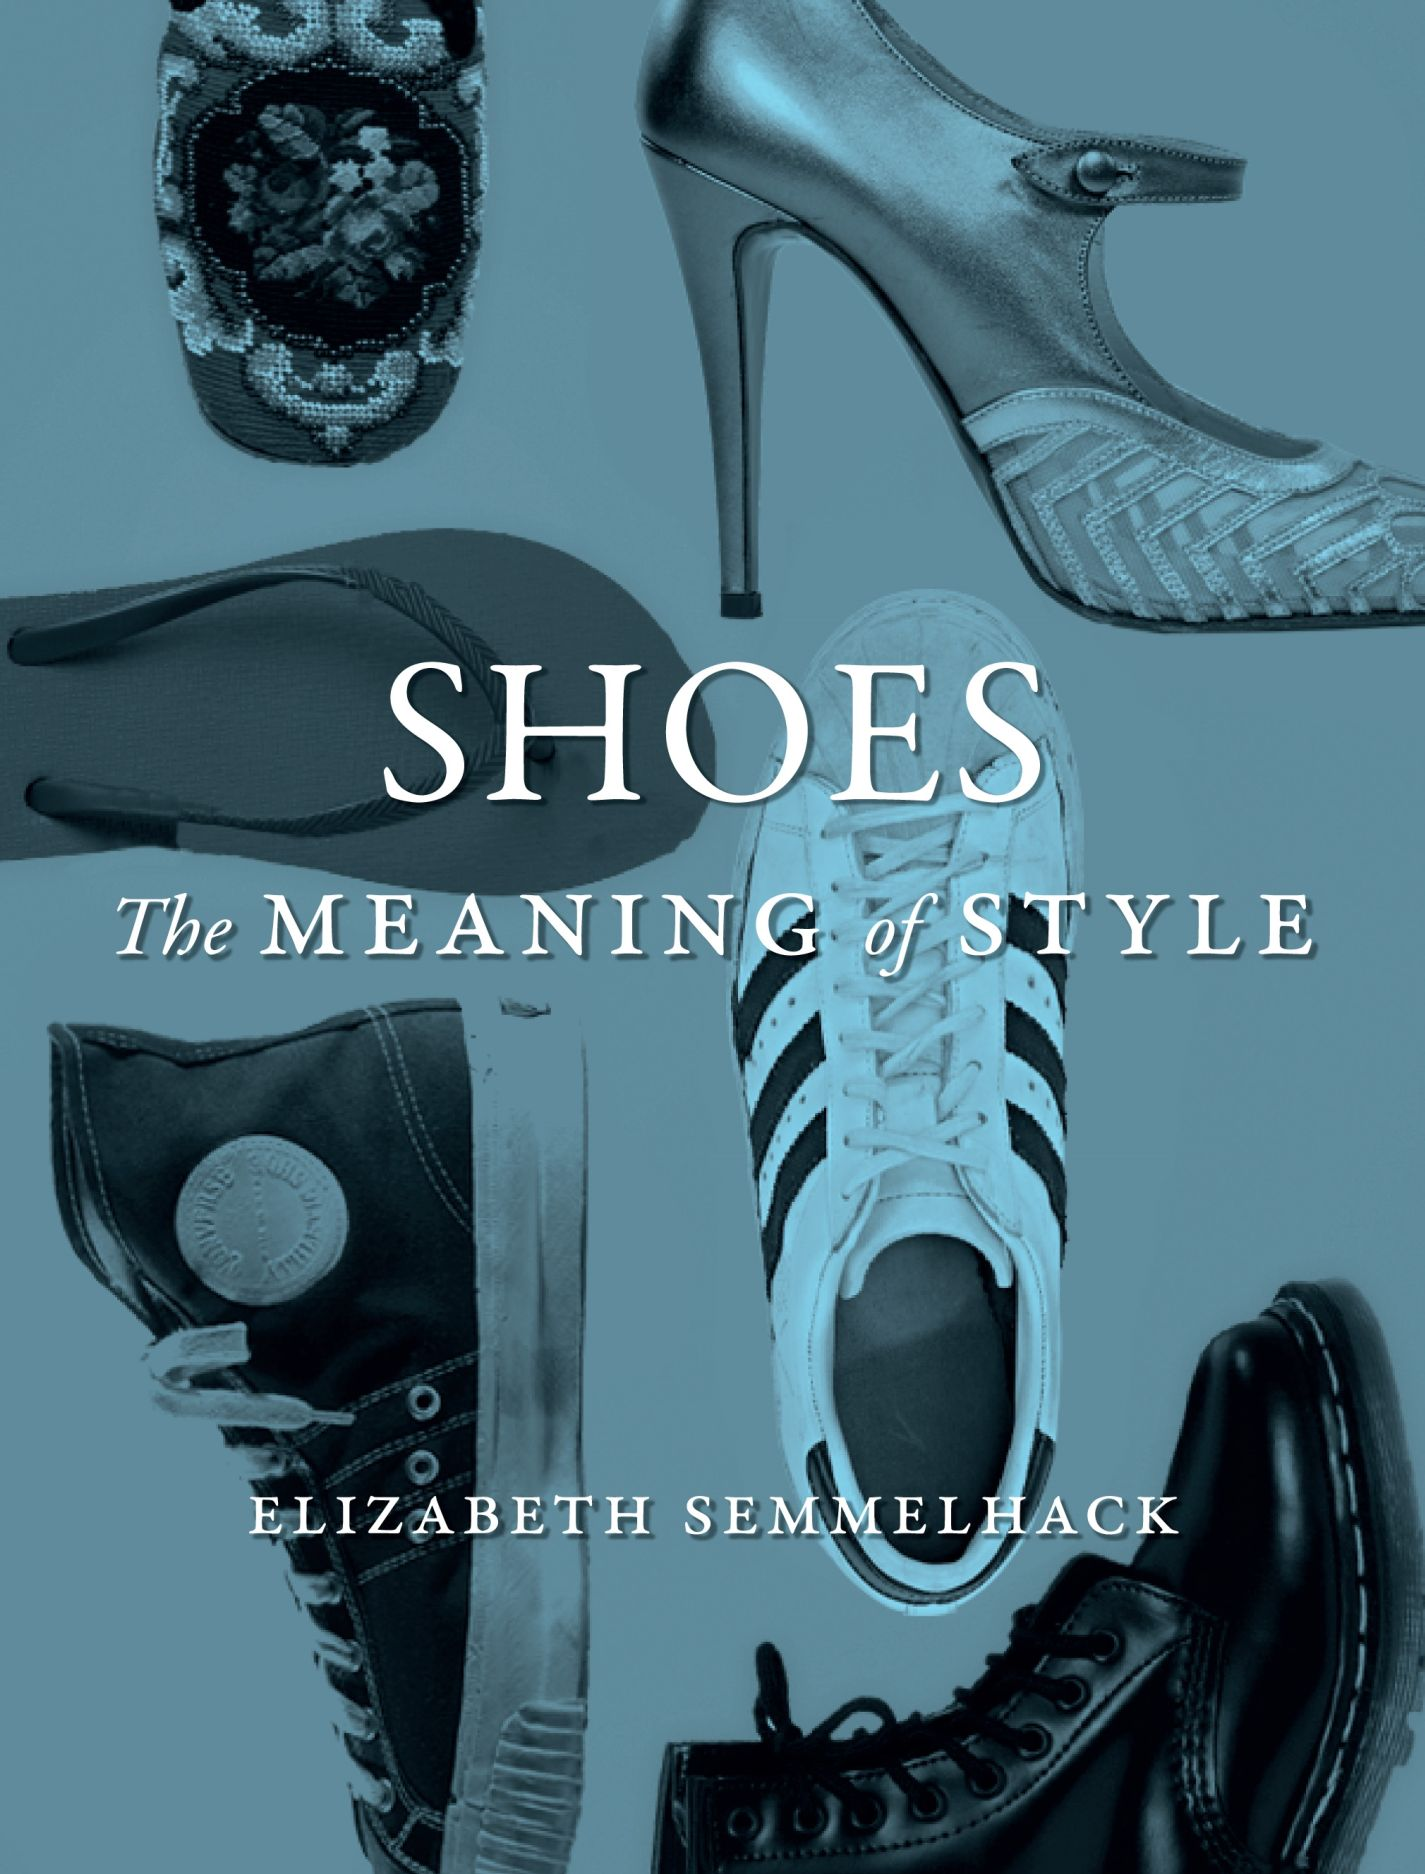 Shoes: The Meaning of Style